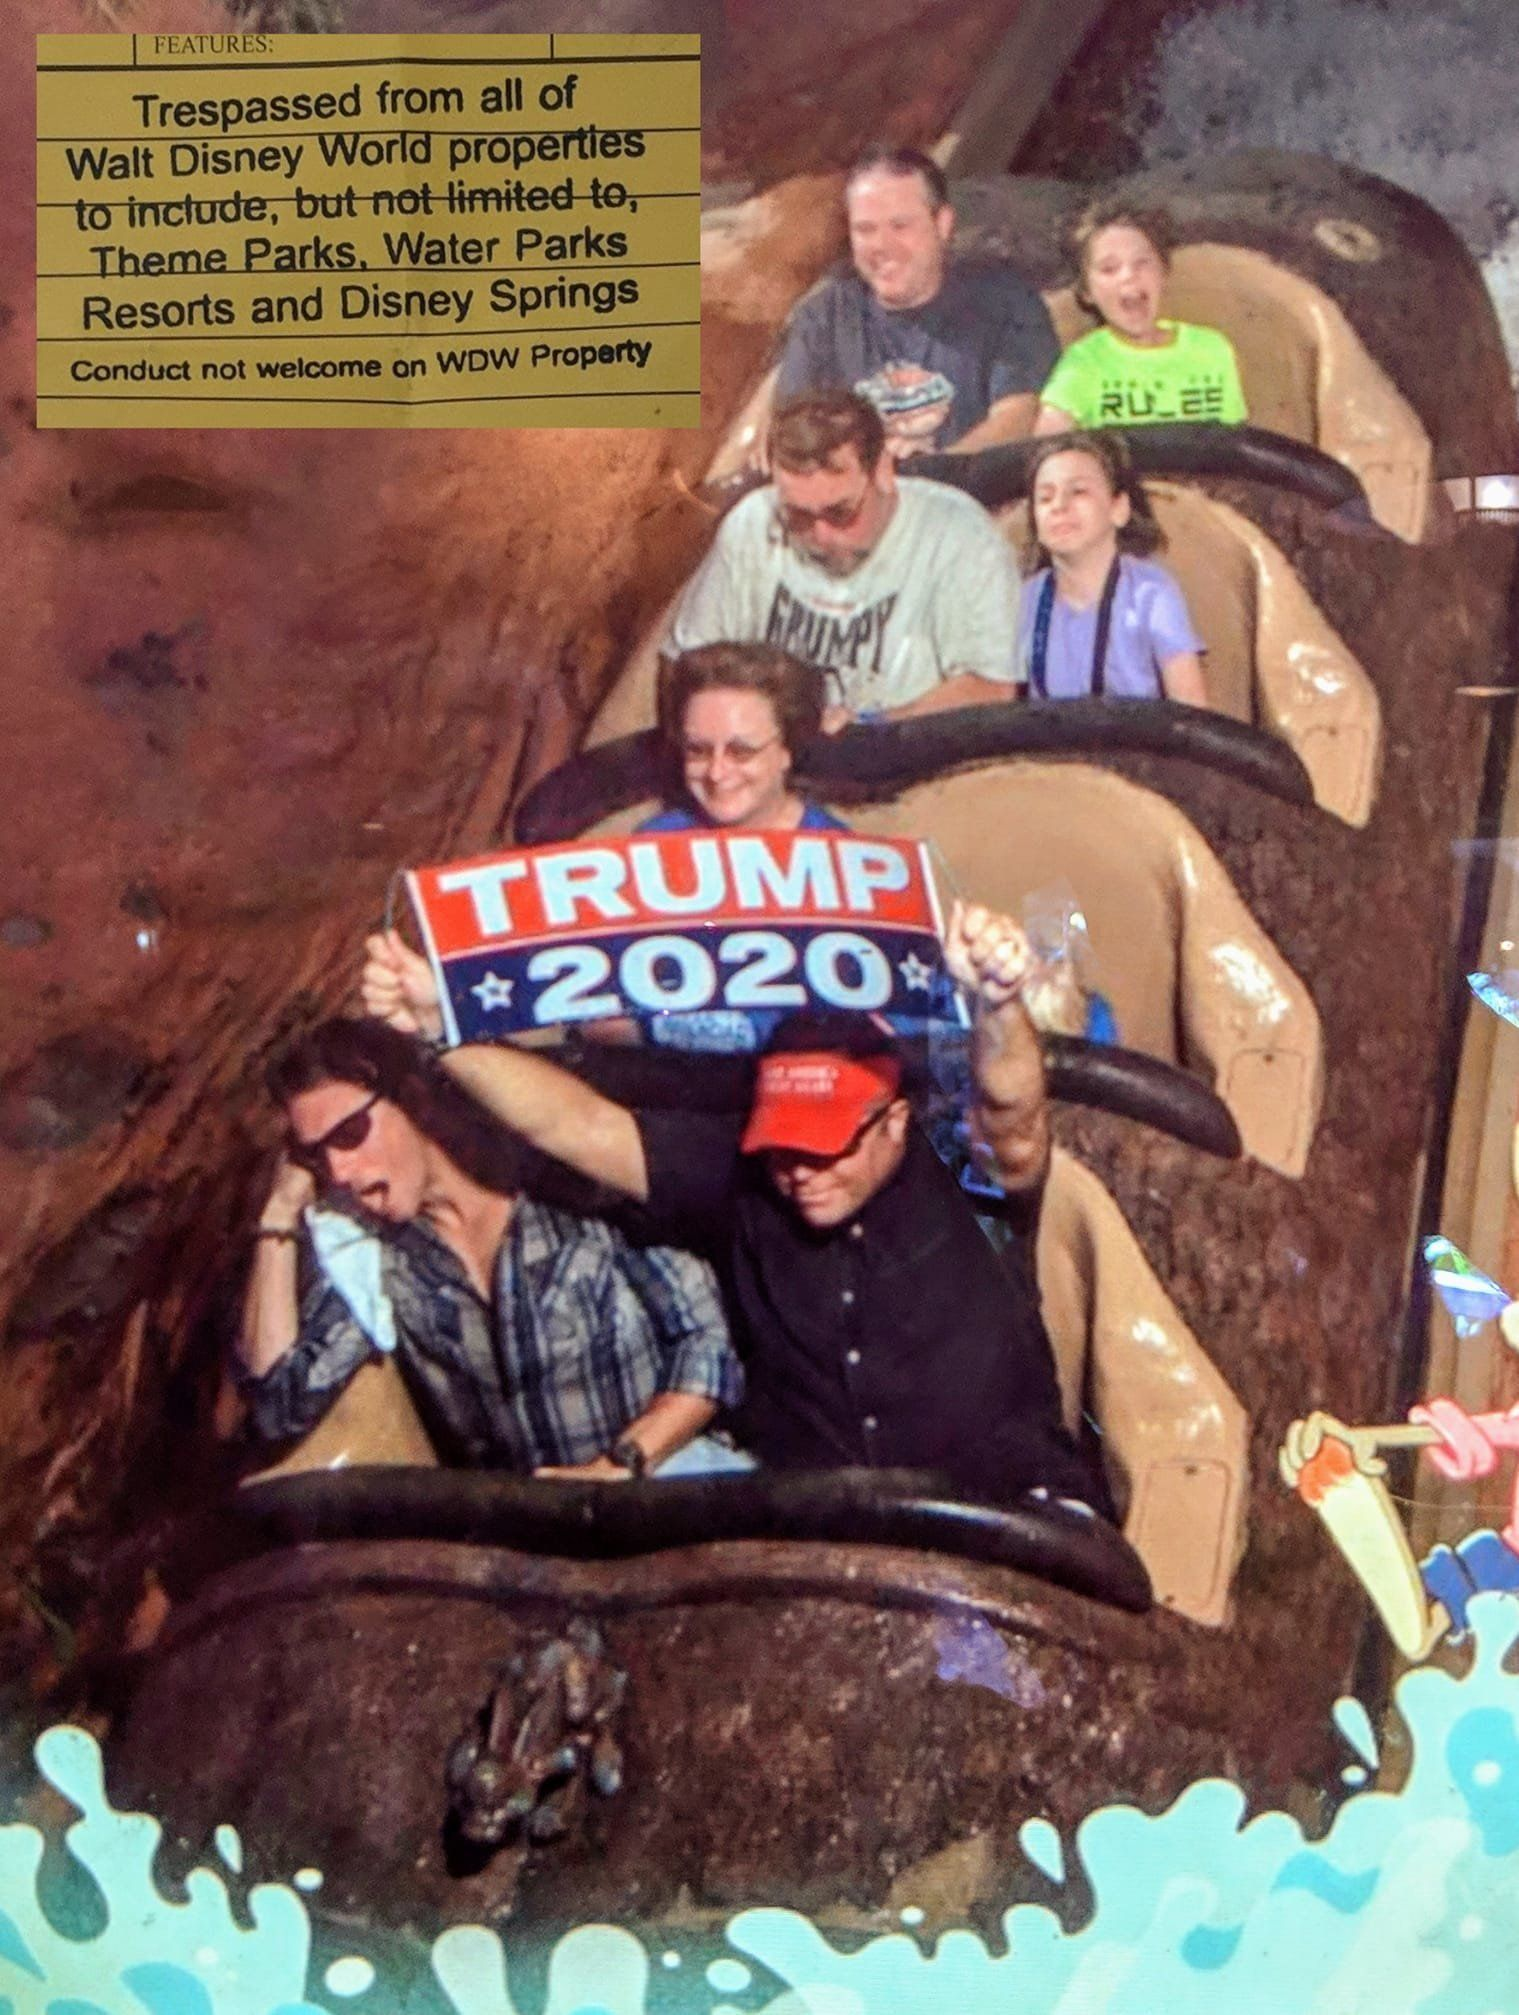 Trump supporter Dino Cini banned from Disney Parks